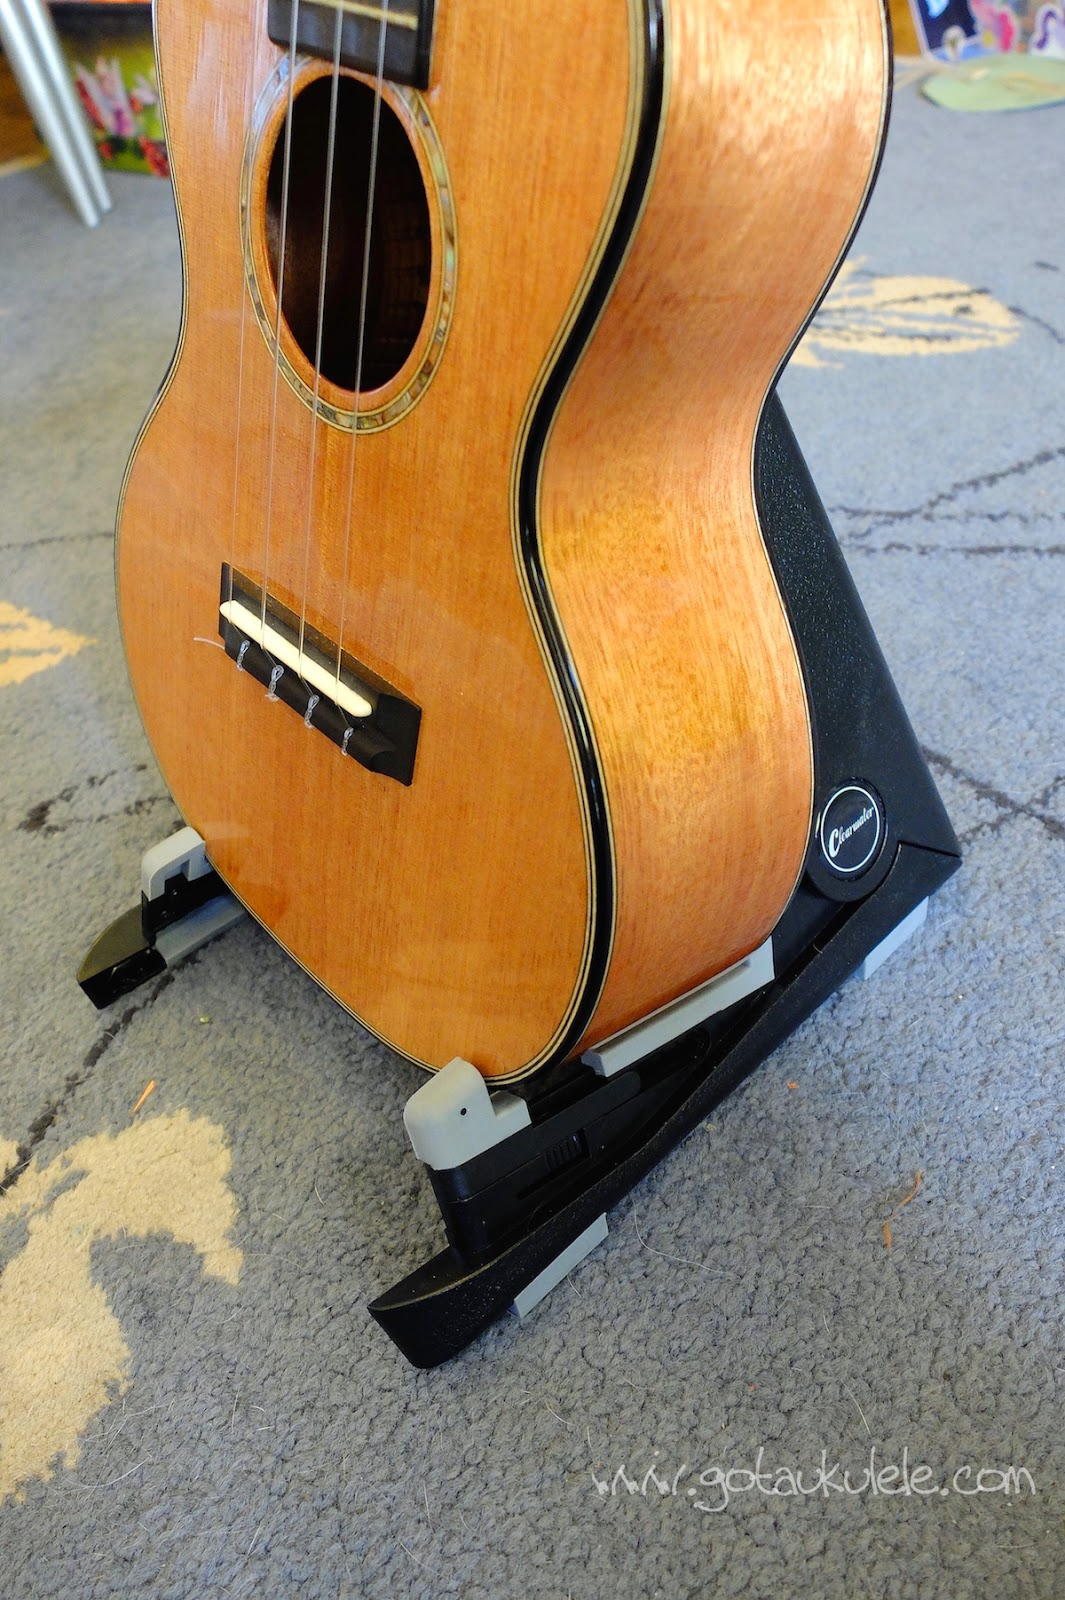 Folding Chair Guitar Chords Baby Bath Tub Clearwater / Aroma Ukulele Stand - Review